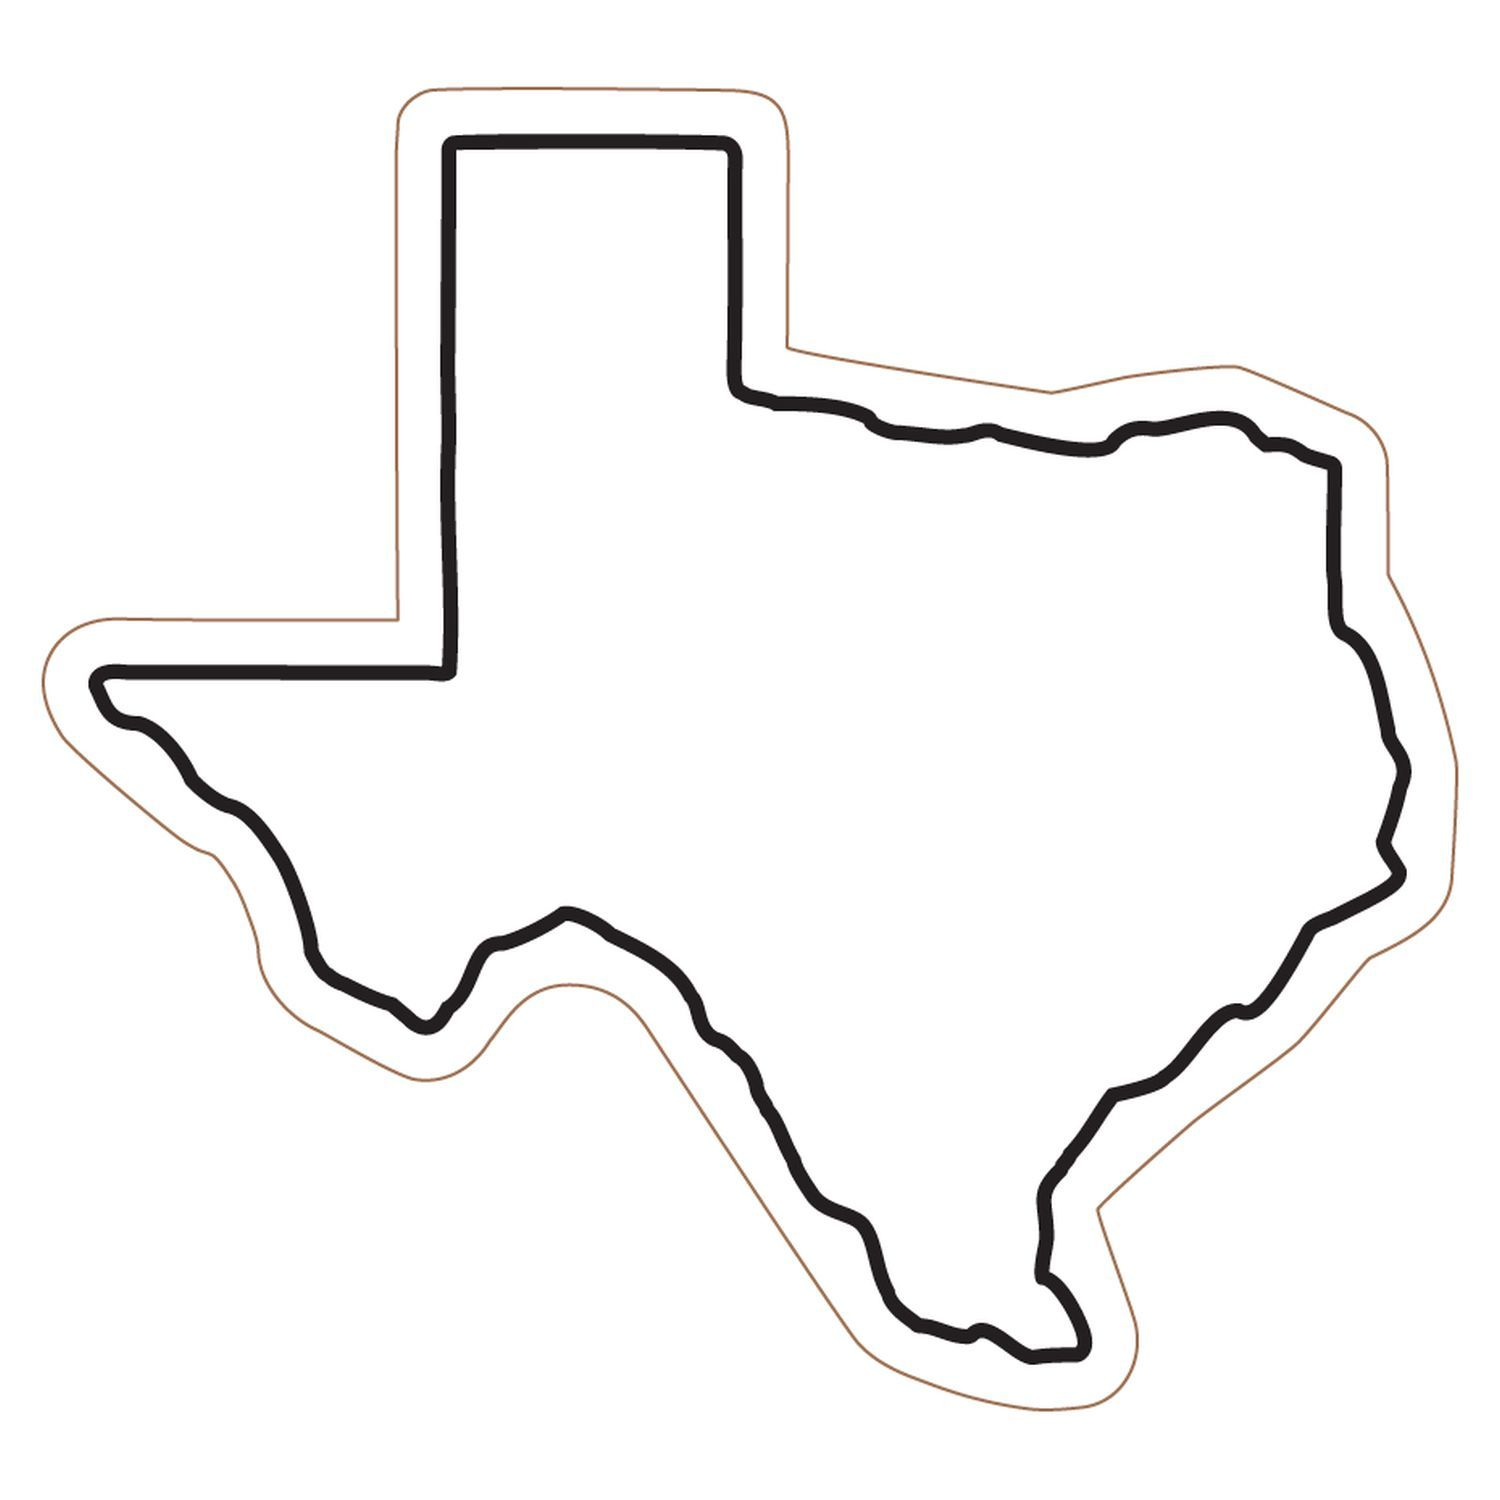 Outline Of Texas.